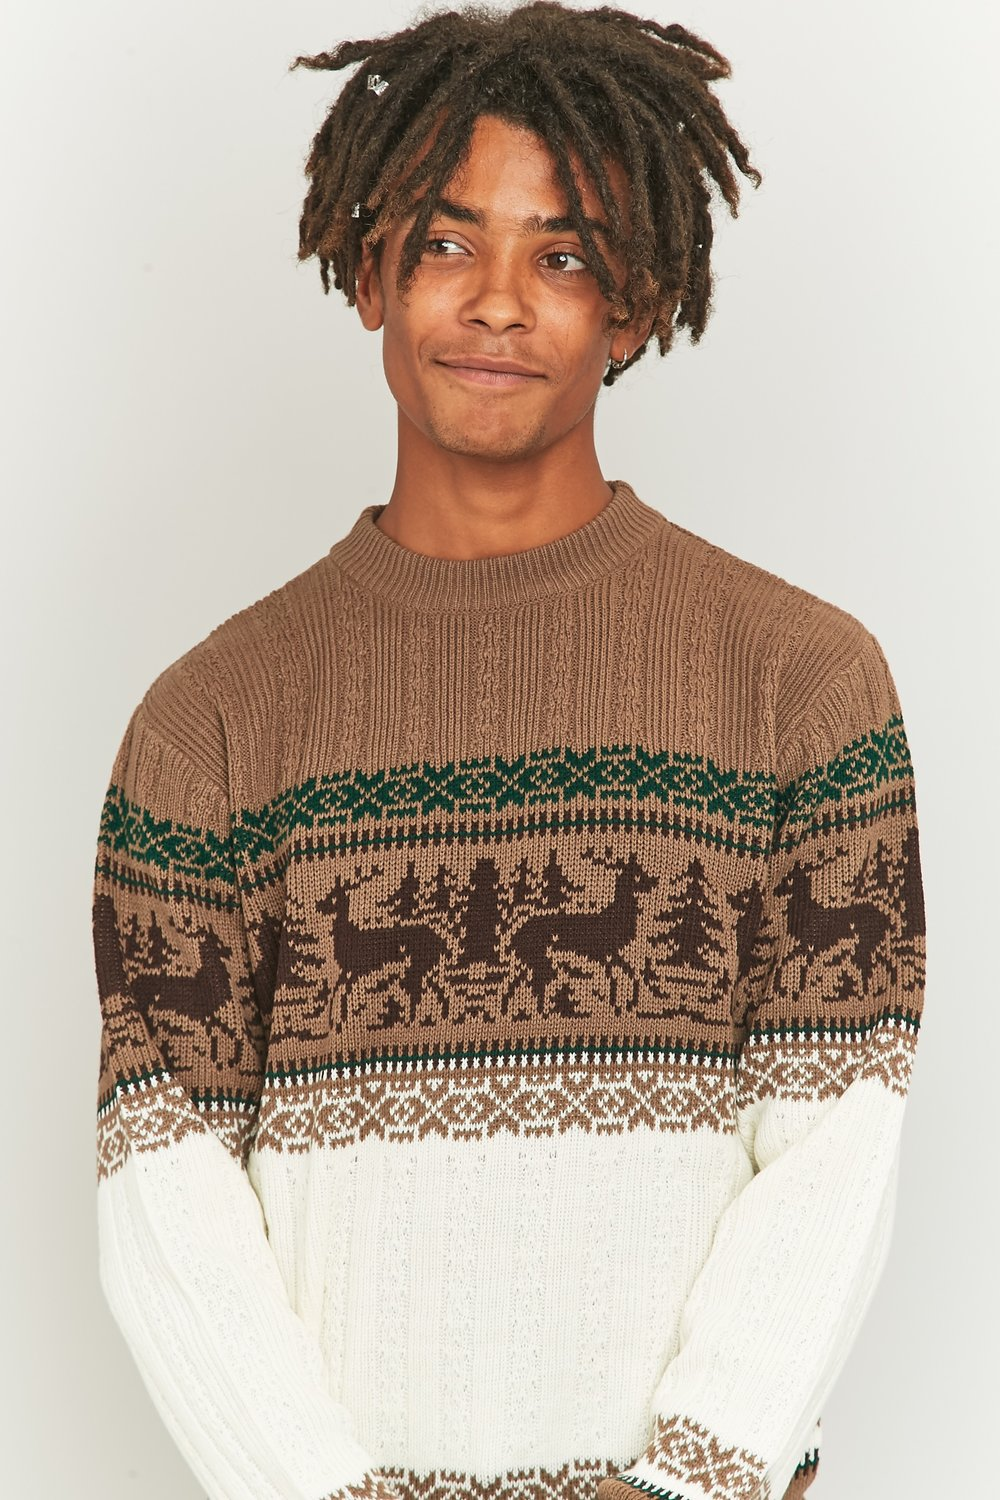 5421417040201  WX. REINDEER JUMPER BROWN   EU    BRN    BRUN   EU    Brown  020  DC    MEGAN  in stock  RENEWAL      DELAYED_606731.jpg